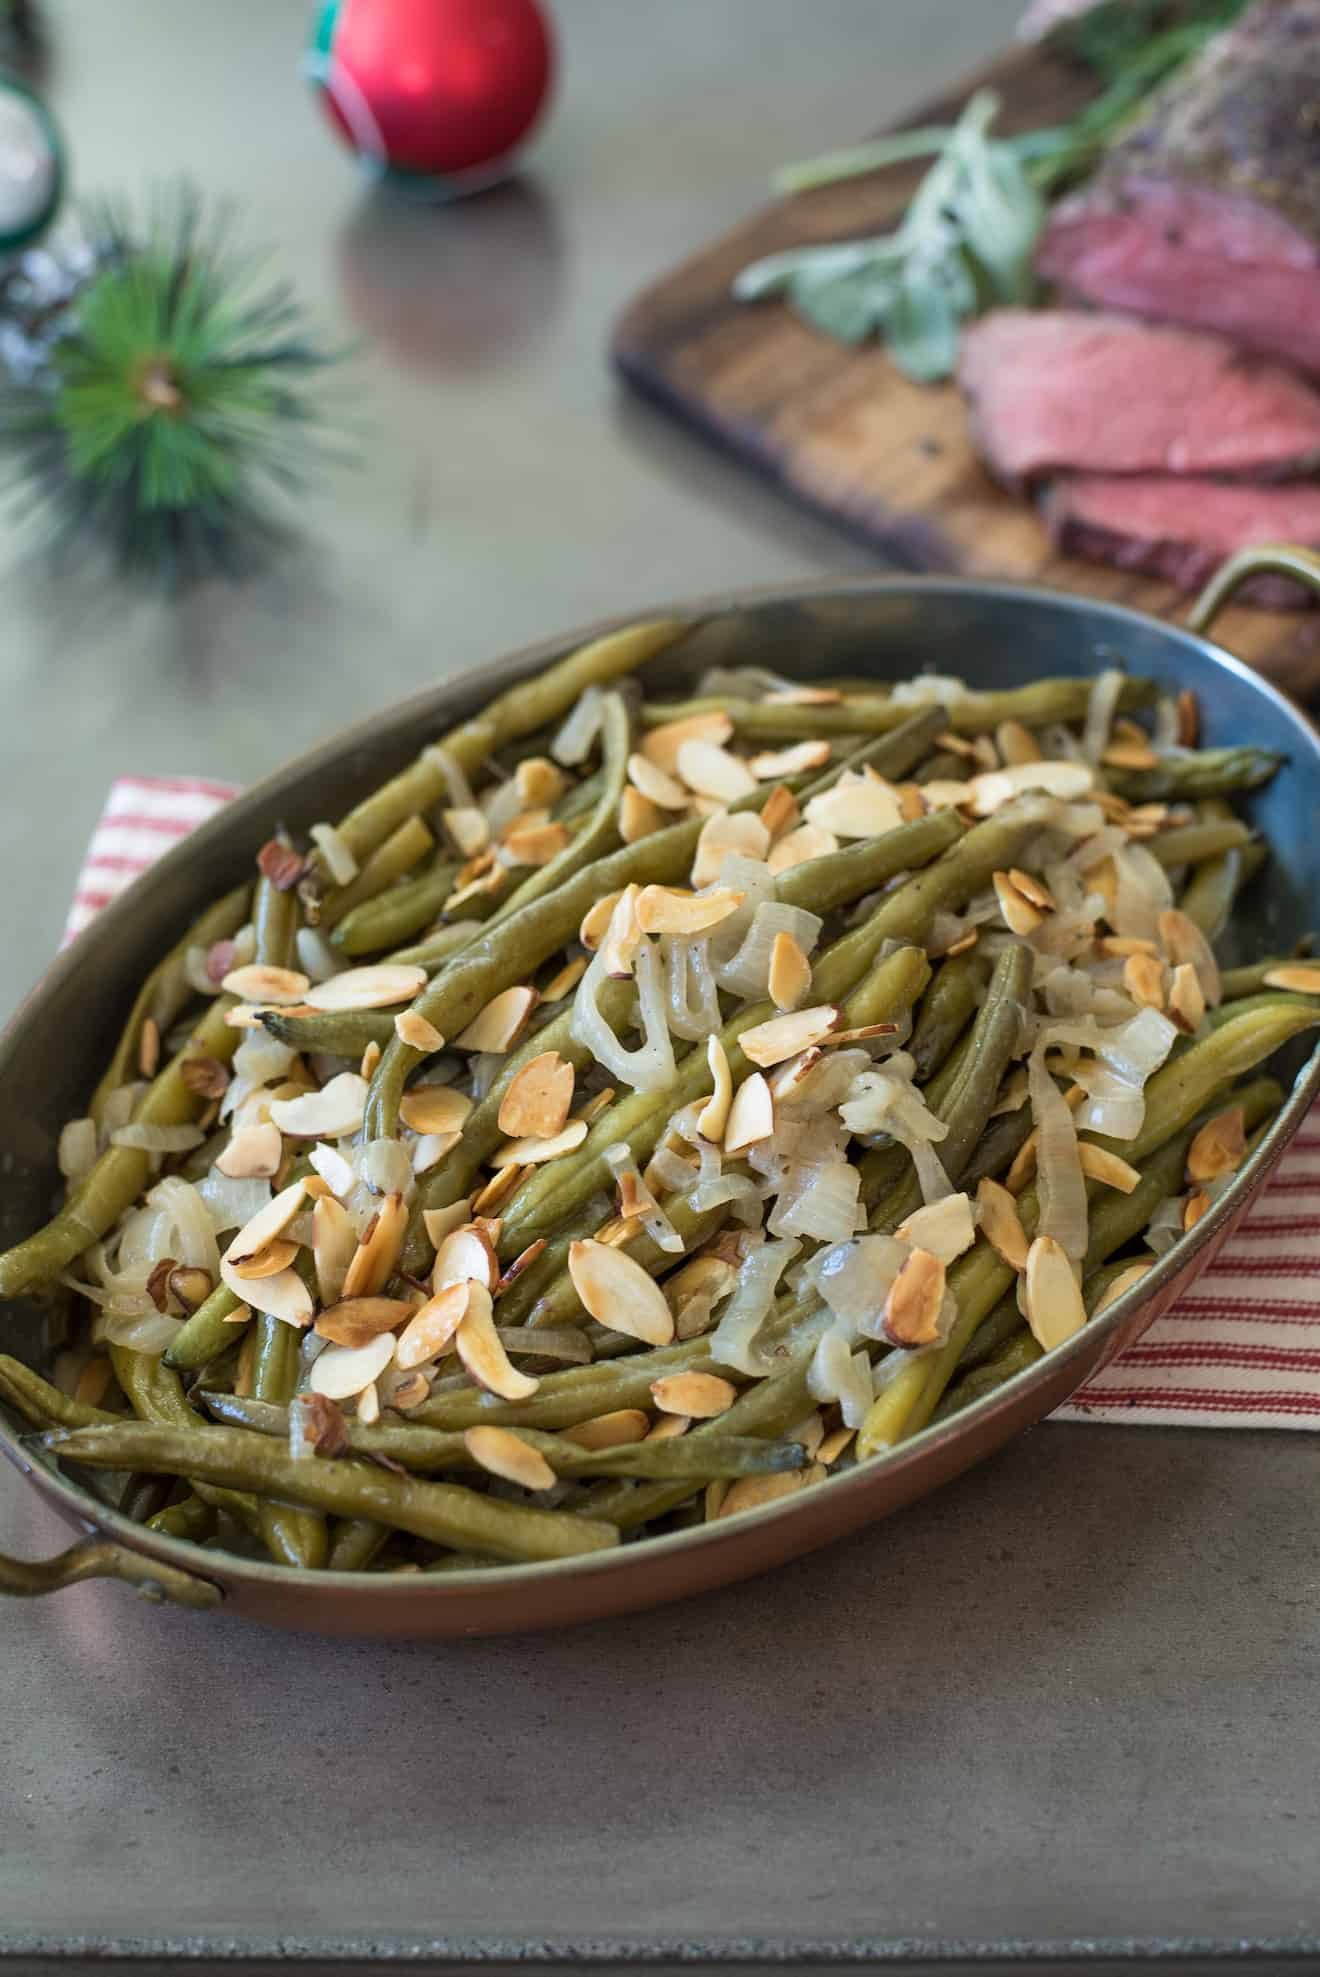 An oval serving dish of slow cooker green beans with shallots and almonds